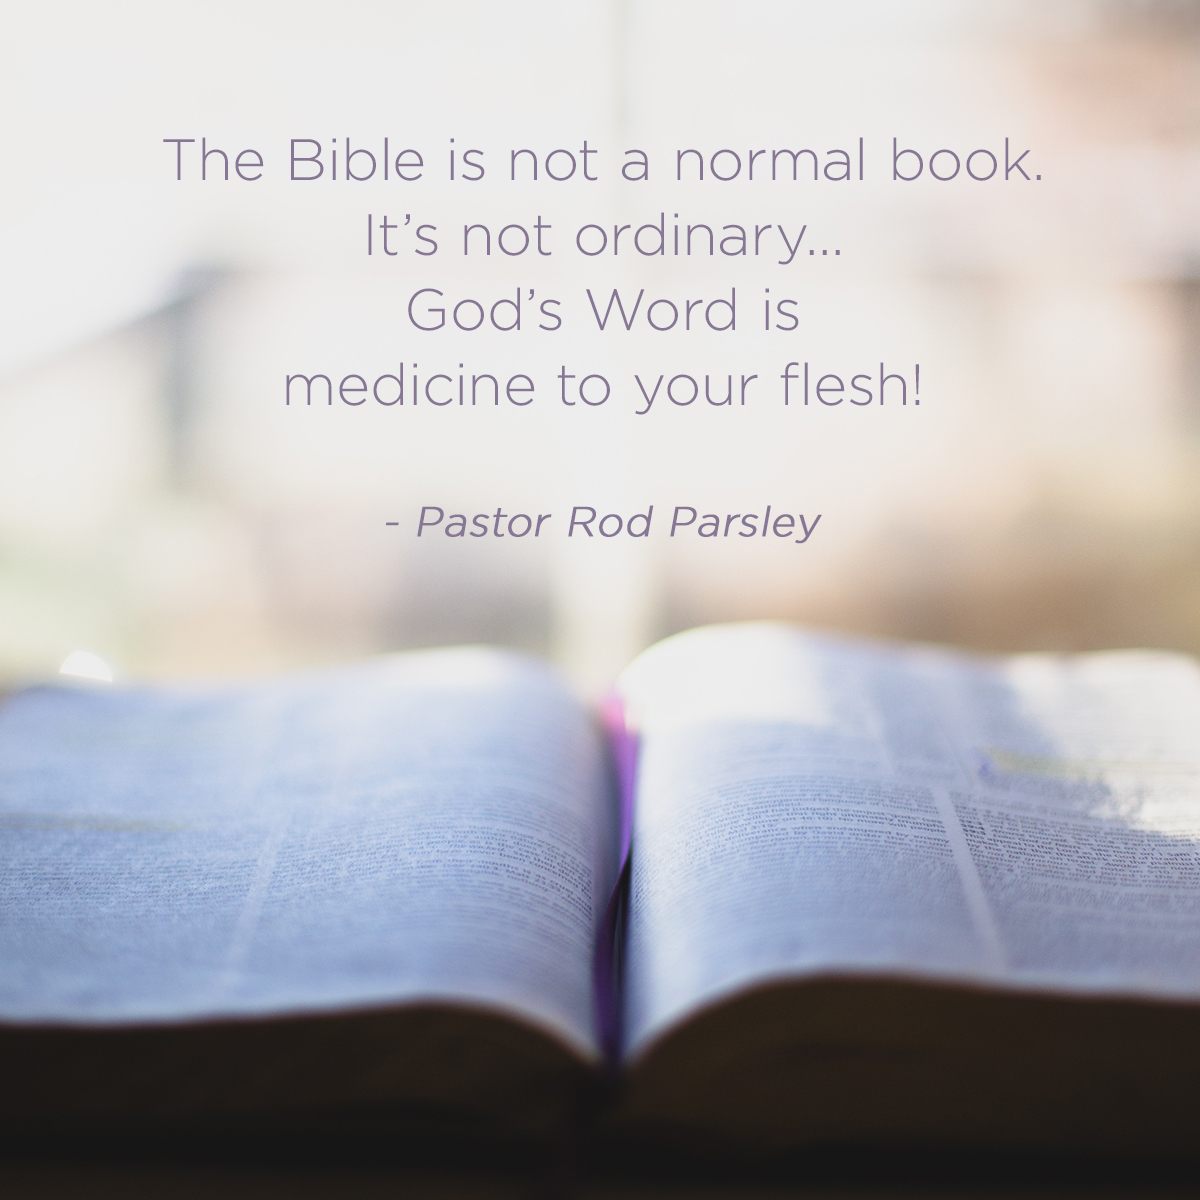 """The Bible is not a normal book. It's not ordinary...God's word is medicine to your flesh!"" – Pastor Rod Parsley"